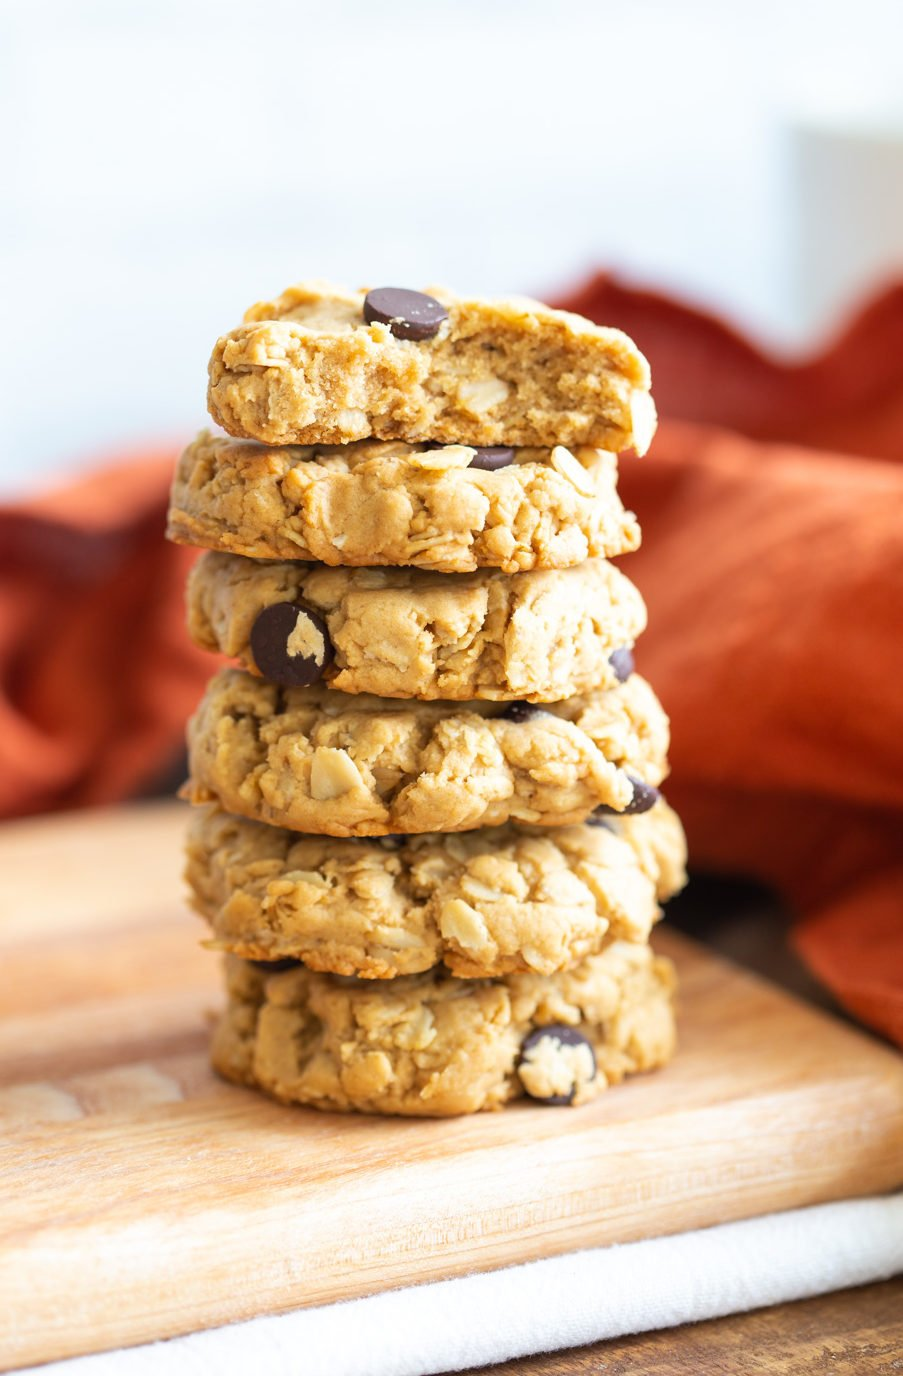 These Vegan Peanut Butter Oatmeal Chocolate Chip Cookies are melt in your mouth, delicious and hearty cookies. They need 1 Bowl, just 8 Ingredients and are ready within 30 Minutes. #Vegan #Soyfree #Recipe #oilfree #refinedsugarfree #Glutenfreeoption #VeganRicha #peanutbutteroatmealchocolatechipcookie #veganpeanutbutteratmealcookie